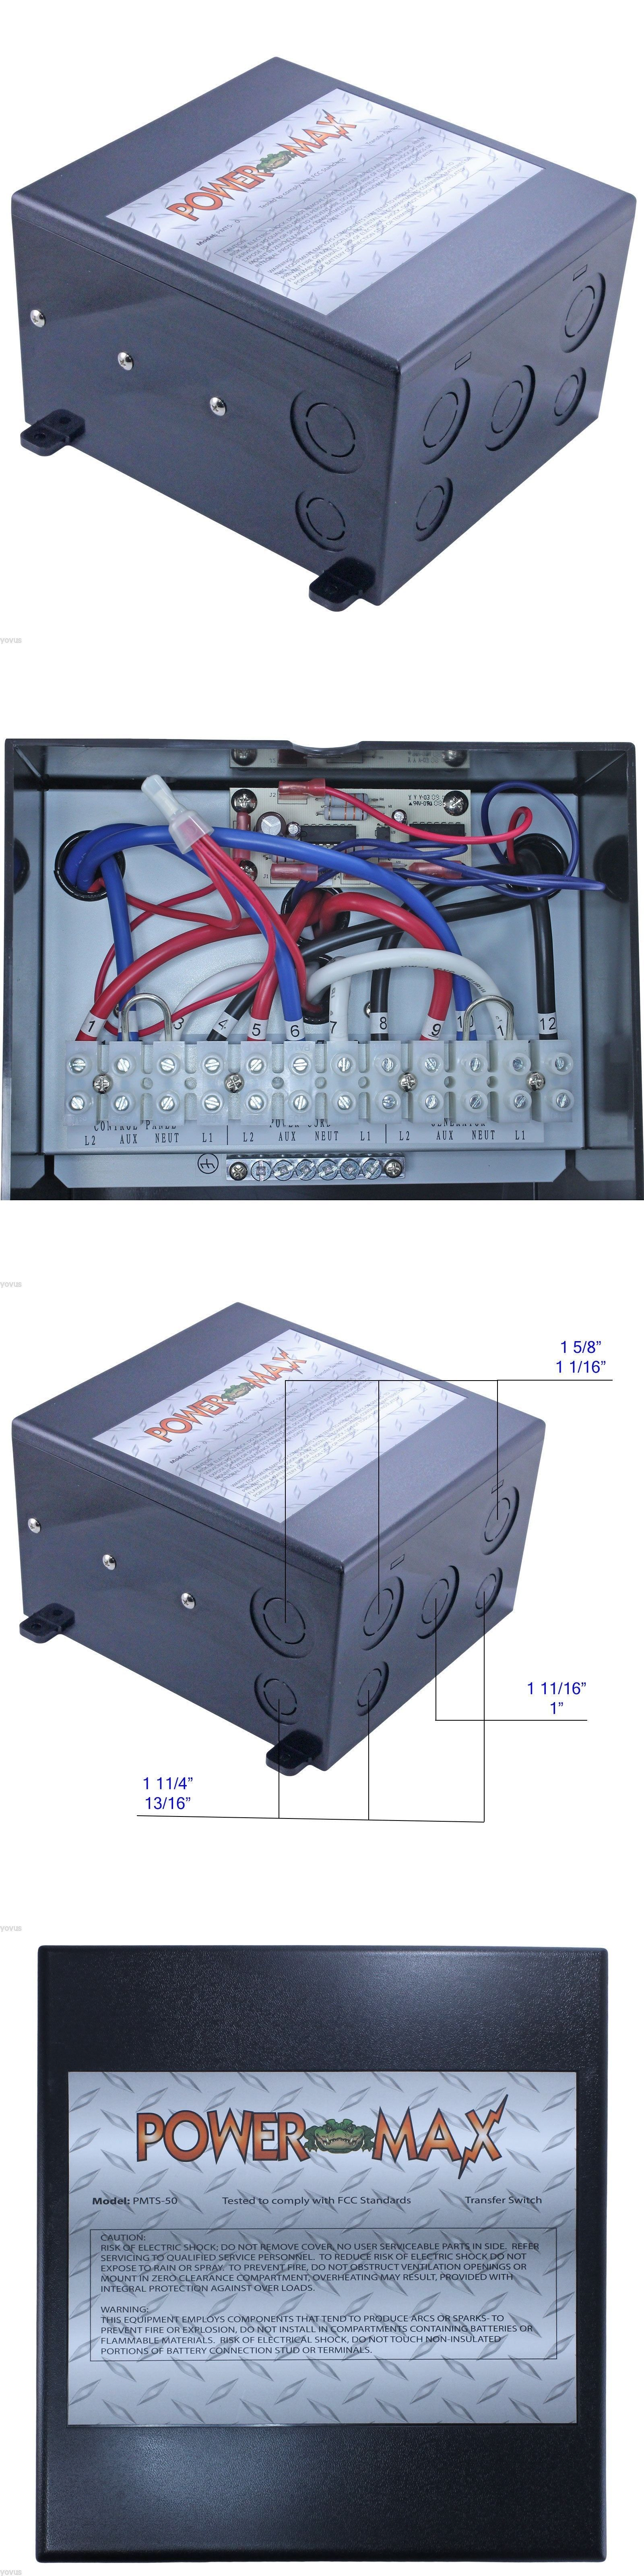 hight resolution of circuit breakers and fuse boxes 20596 powermax pmts 50 50 amp 120 240 vac